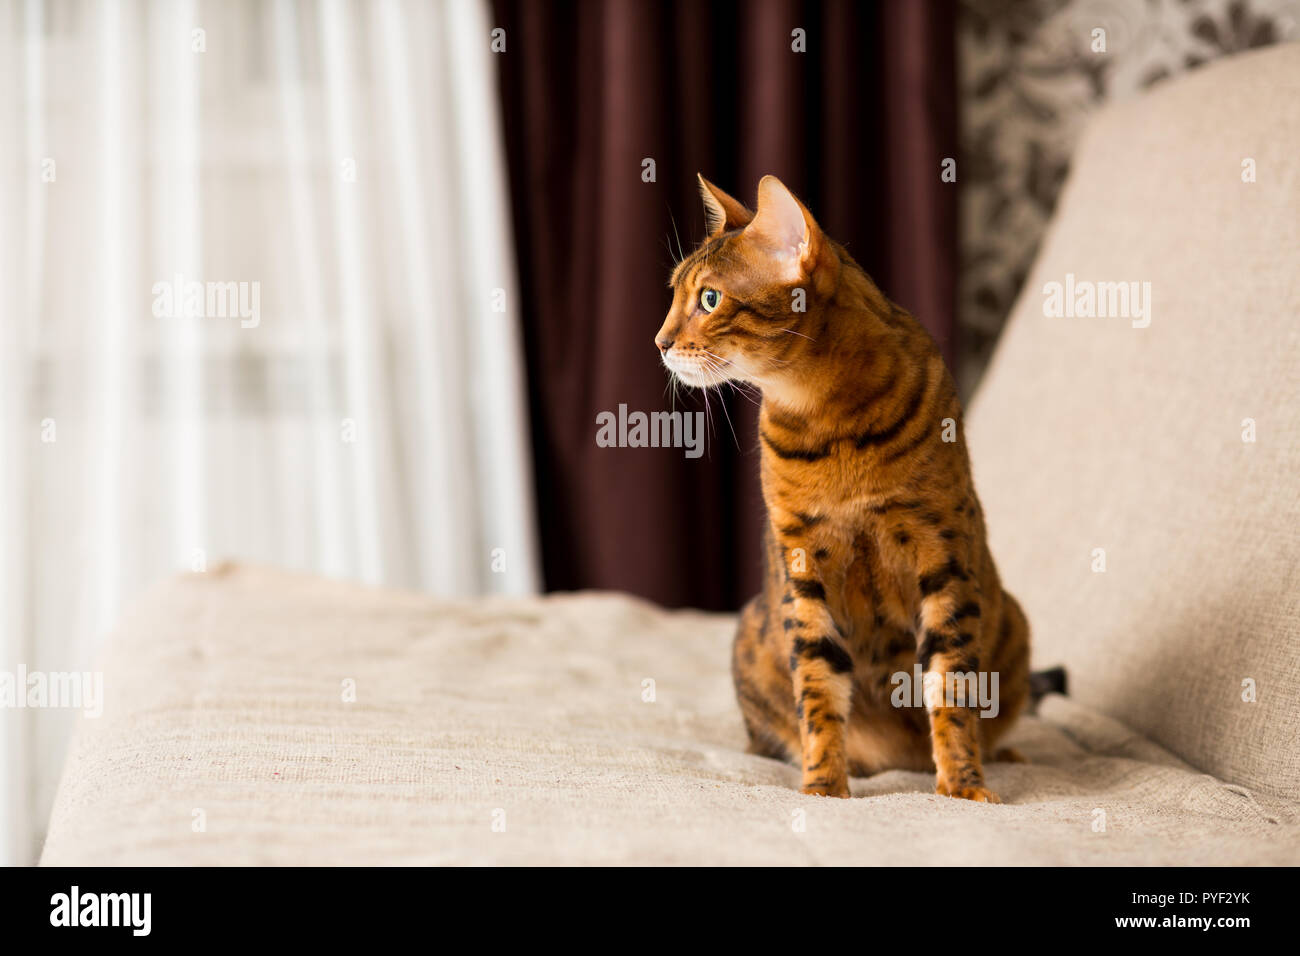 Adult Bengali cat sitting on the couch - Stock Image